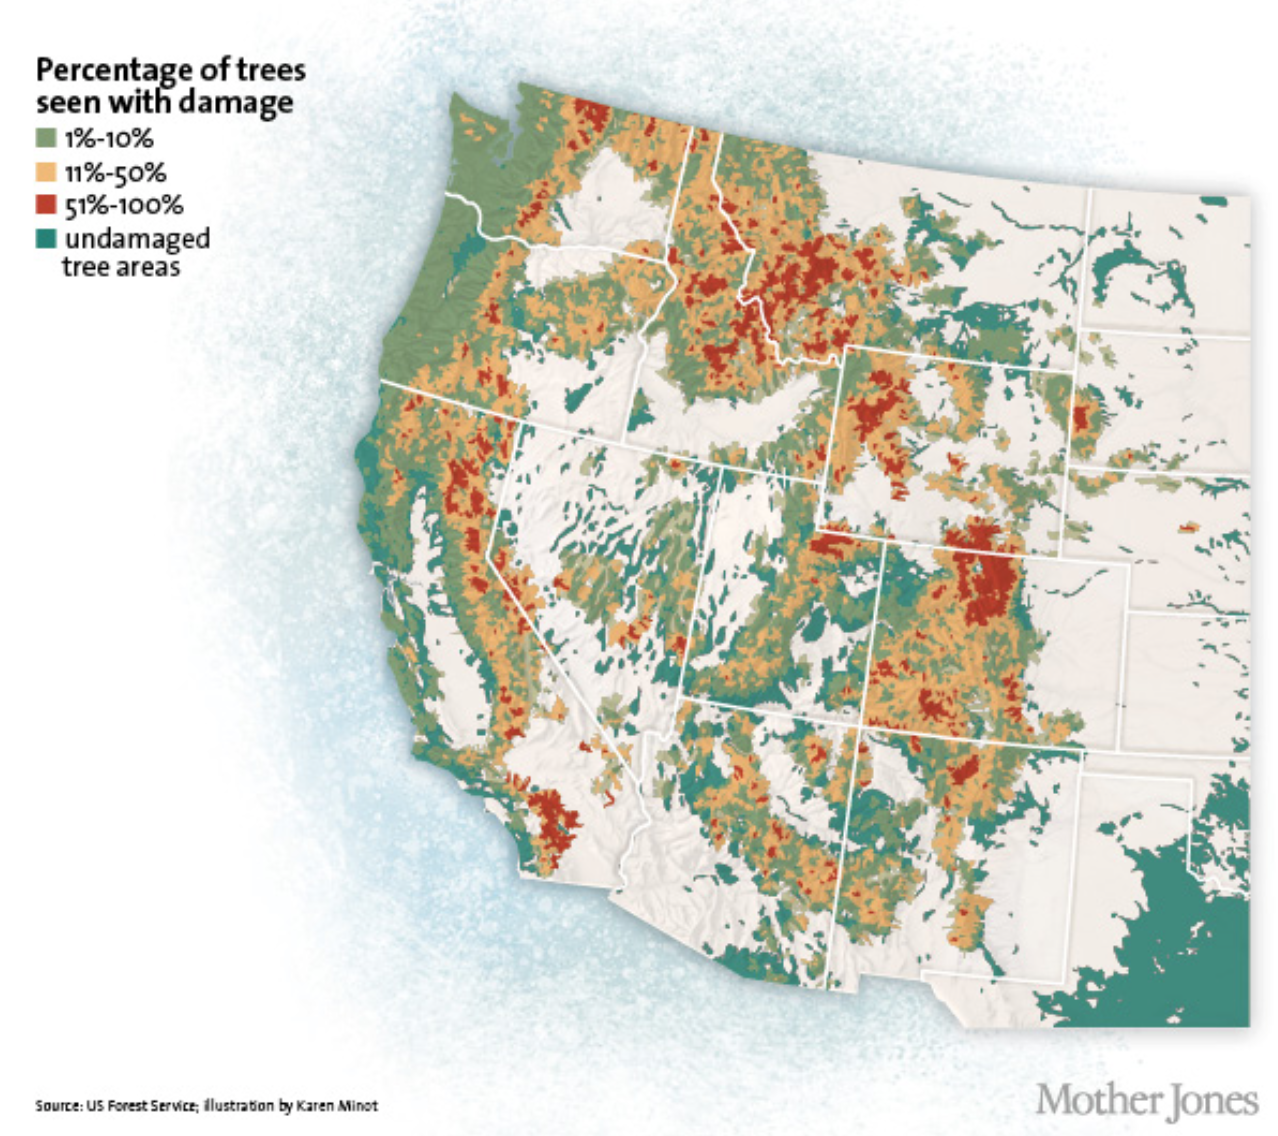 Bark beetles have impacted wide swaths of the Intermountain West. Douglas-fir and mountain pine beetles typically colonize and kill large diameter, mature Douglas-fir, ponderosa pine, and lodgepole pine, trees landowners are often most keen to protect. They can also affect whitebark pine, a threatened species of our mountains.